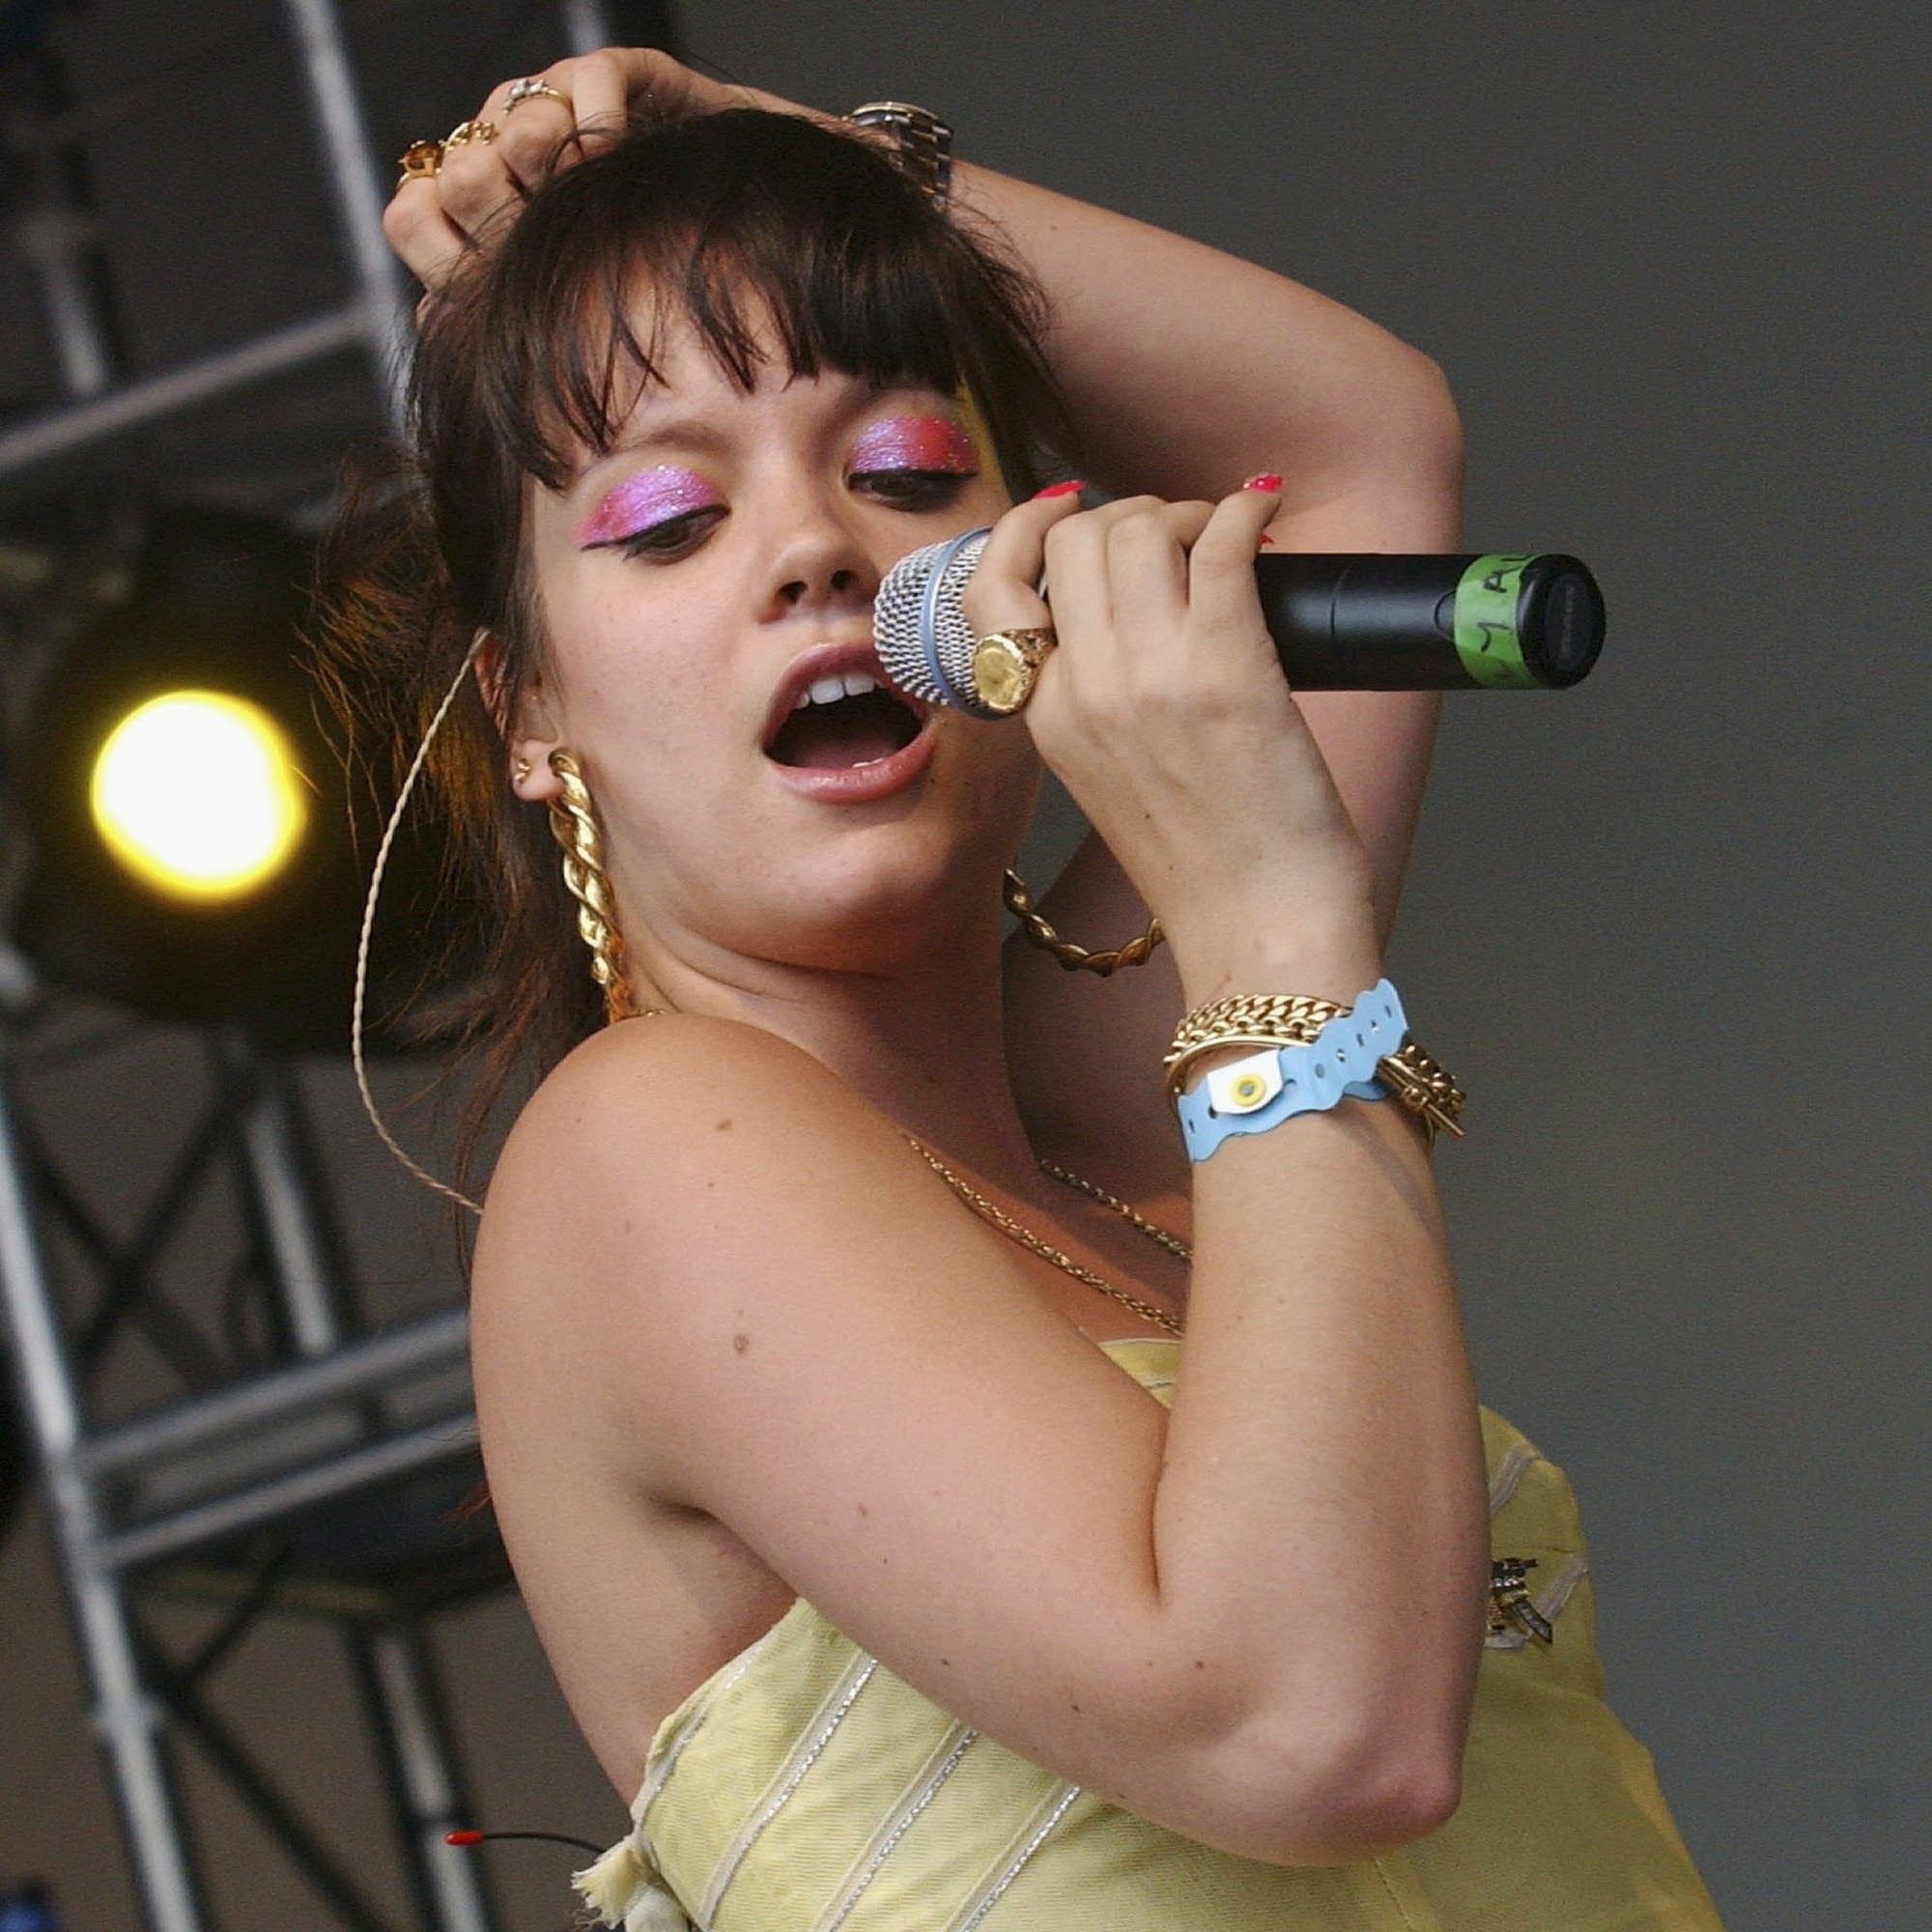 Lily Allen performs in England in 2006.